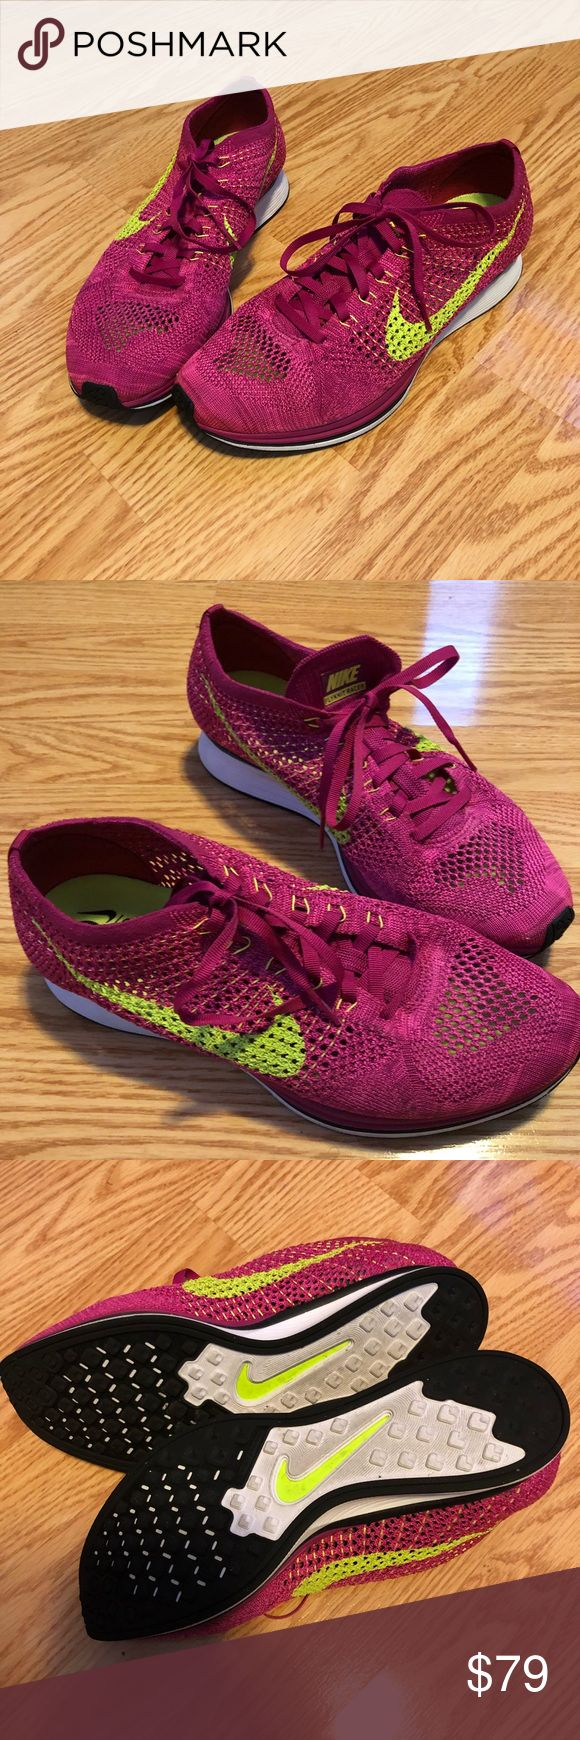 Nike Flyknit Racer Volt Pink/ Fireberry Preloved sneakers. They are in good condition, only worn three or four times. I wear a women's size 10.5 and these sneakers fit perfectly. No box.   Manufacturer Sku - 526628 607 Gender - Mens Colorway - FIREBERRY/VOLT-PINK FLASH Materials - Flyknit Nike Shoes Sneakers